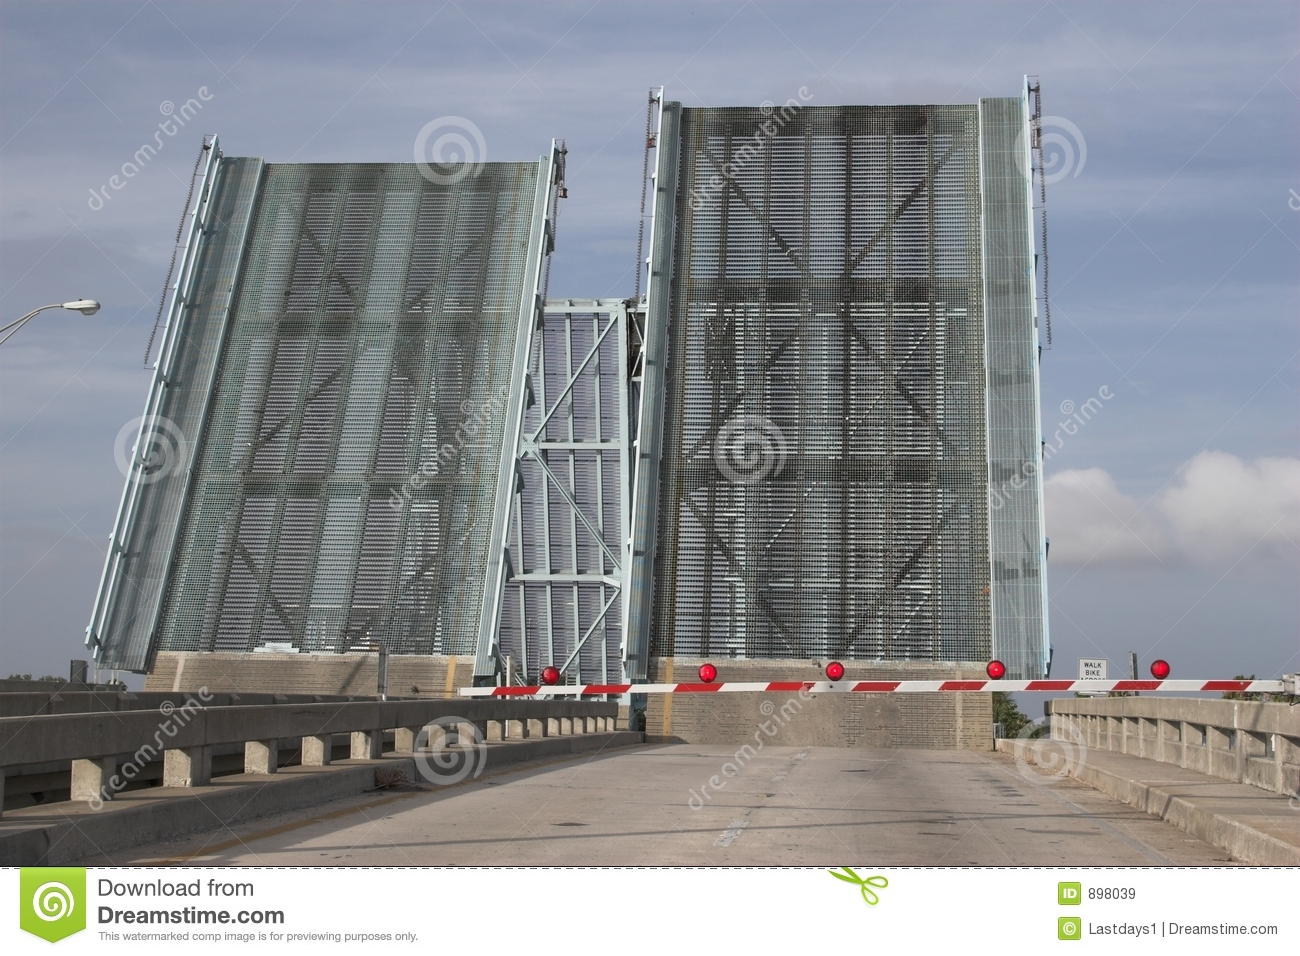 Podnieśli drawbridges 2